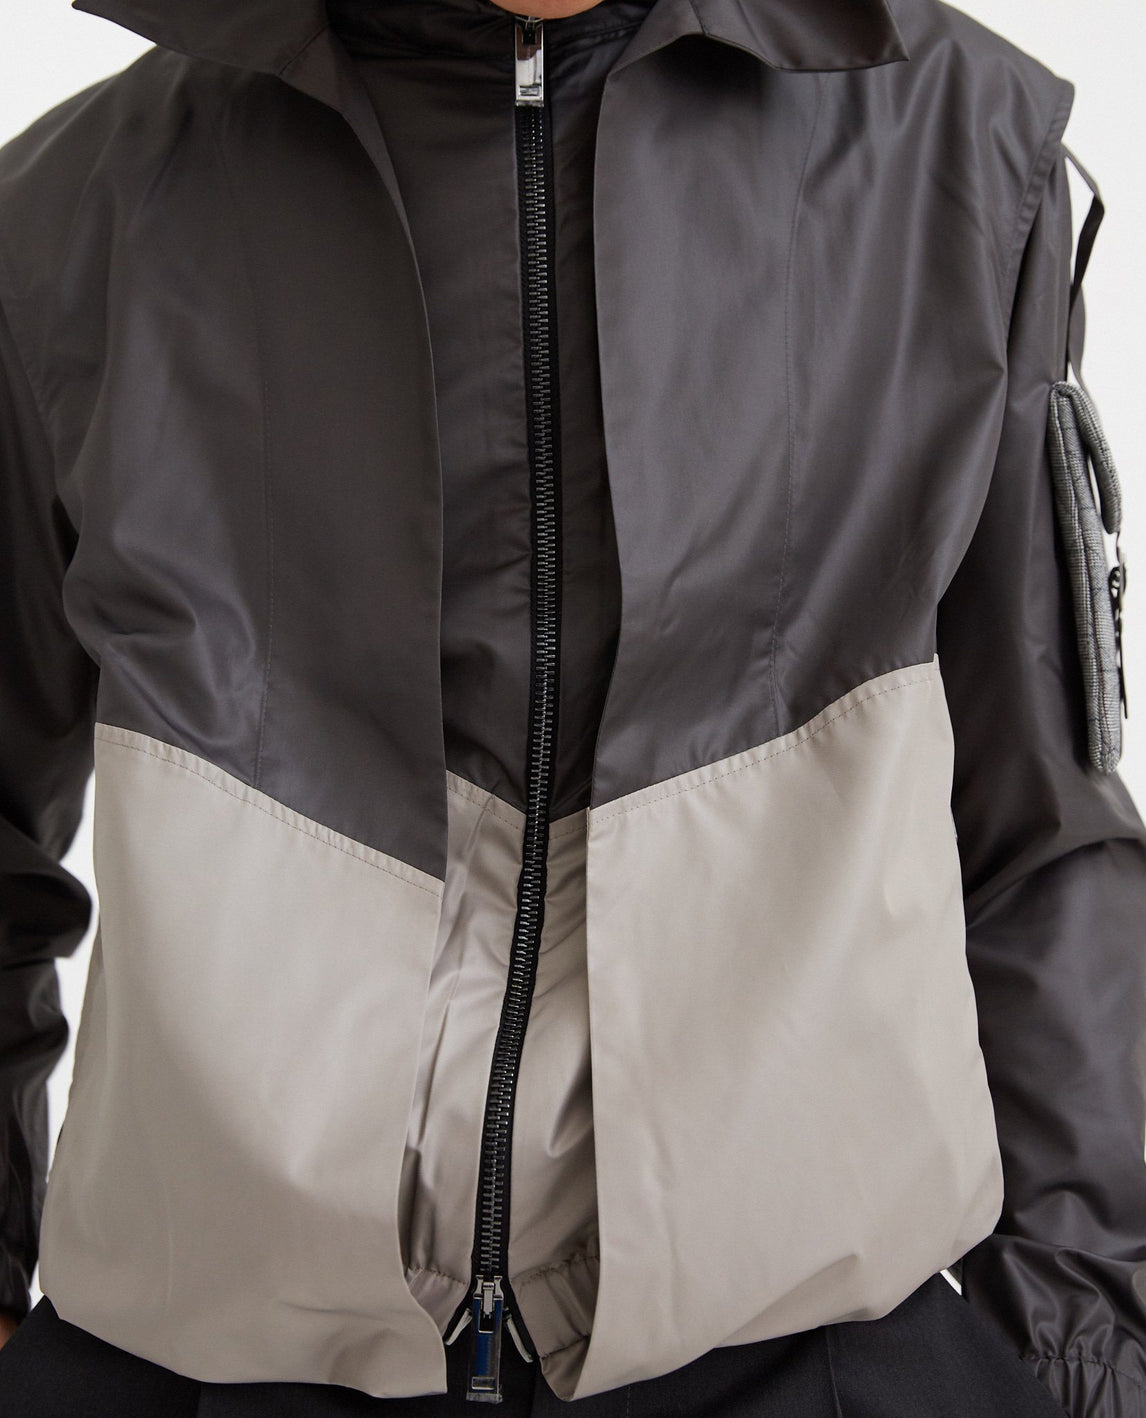 Patch Work Track Jacket - Black and Grey MENS DELADA